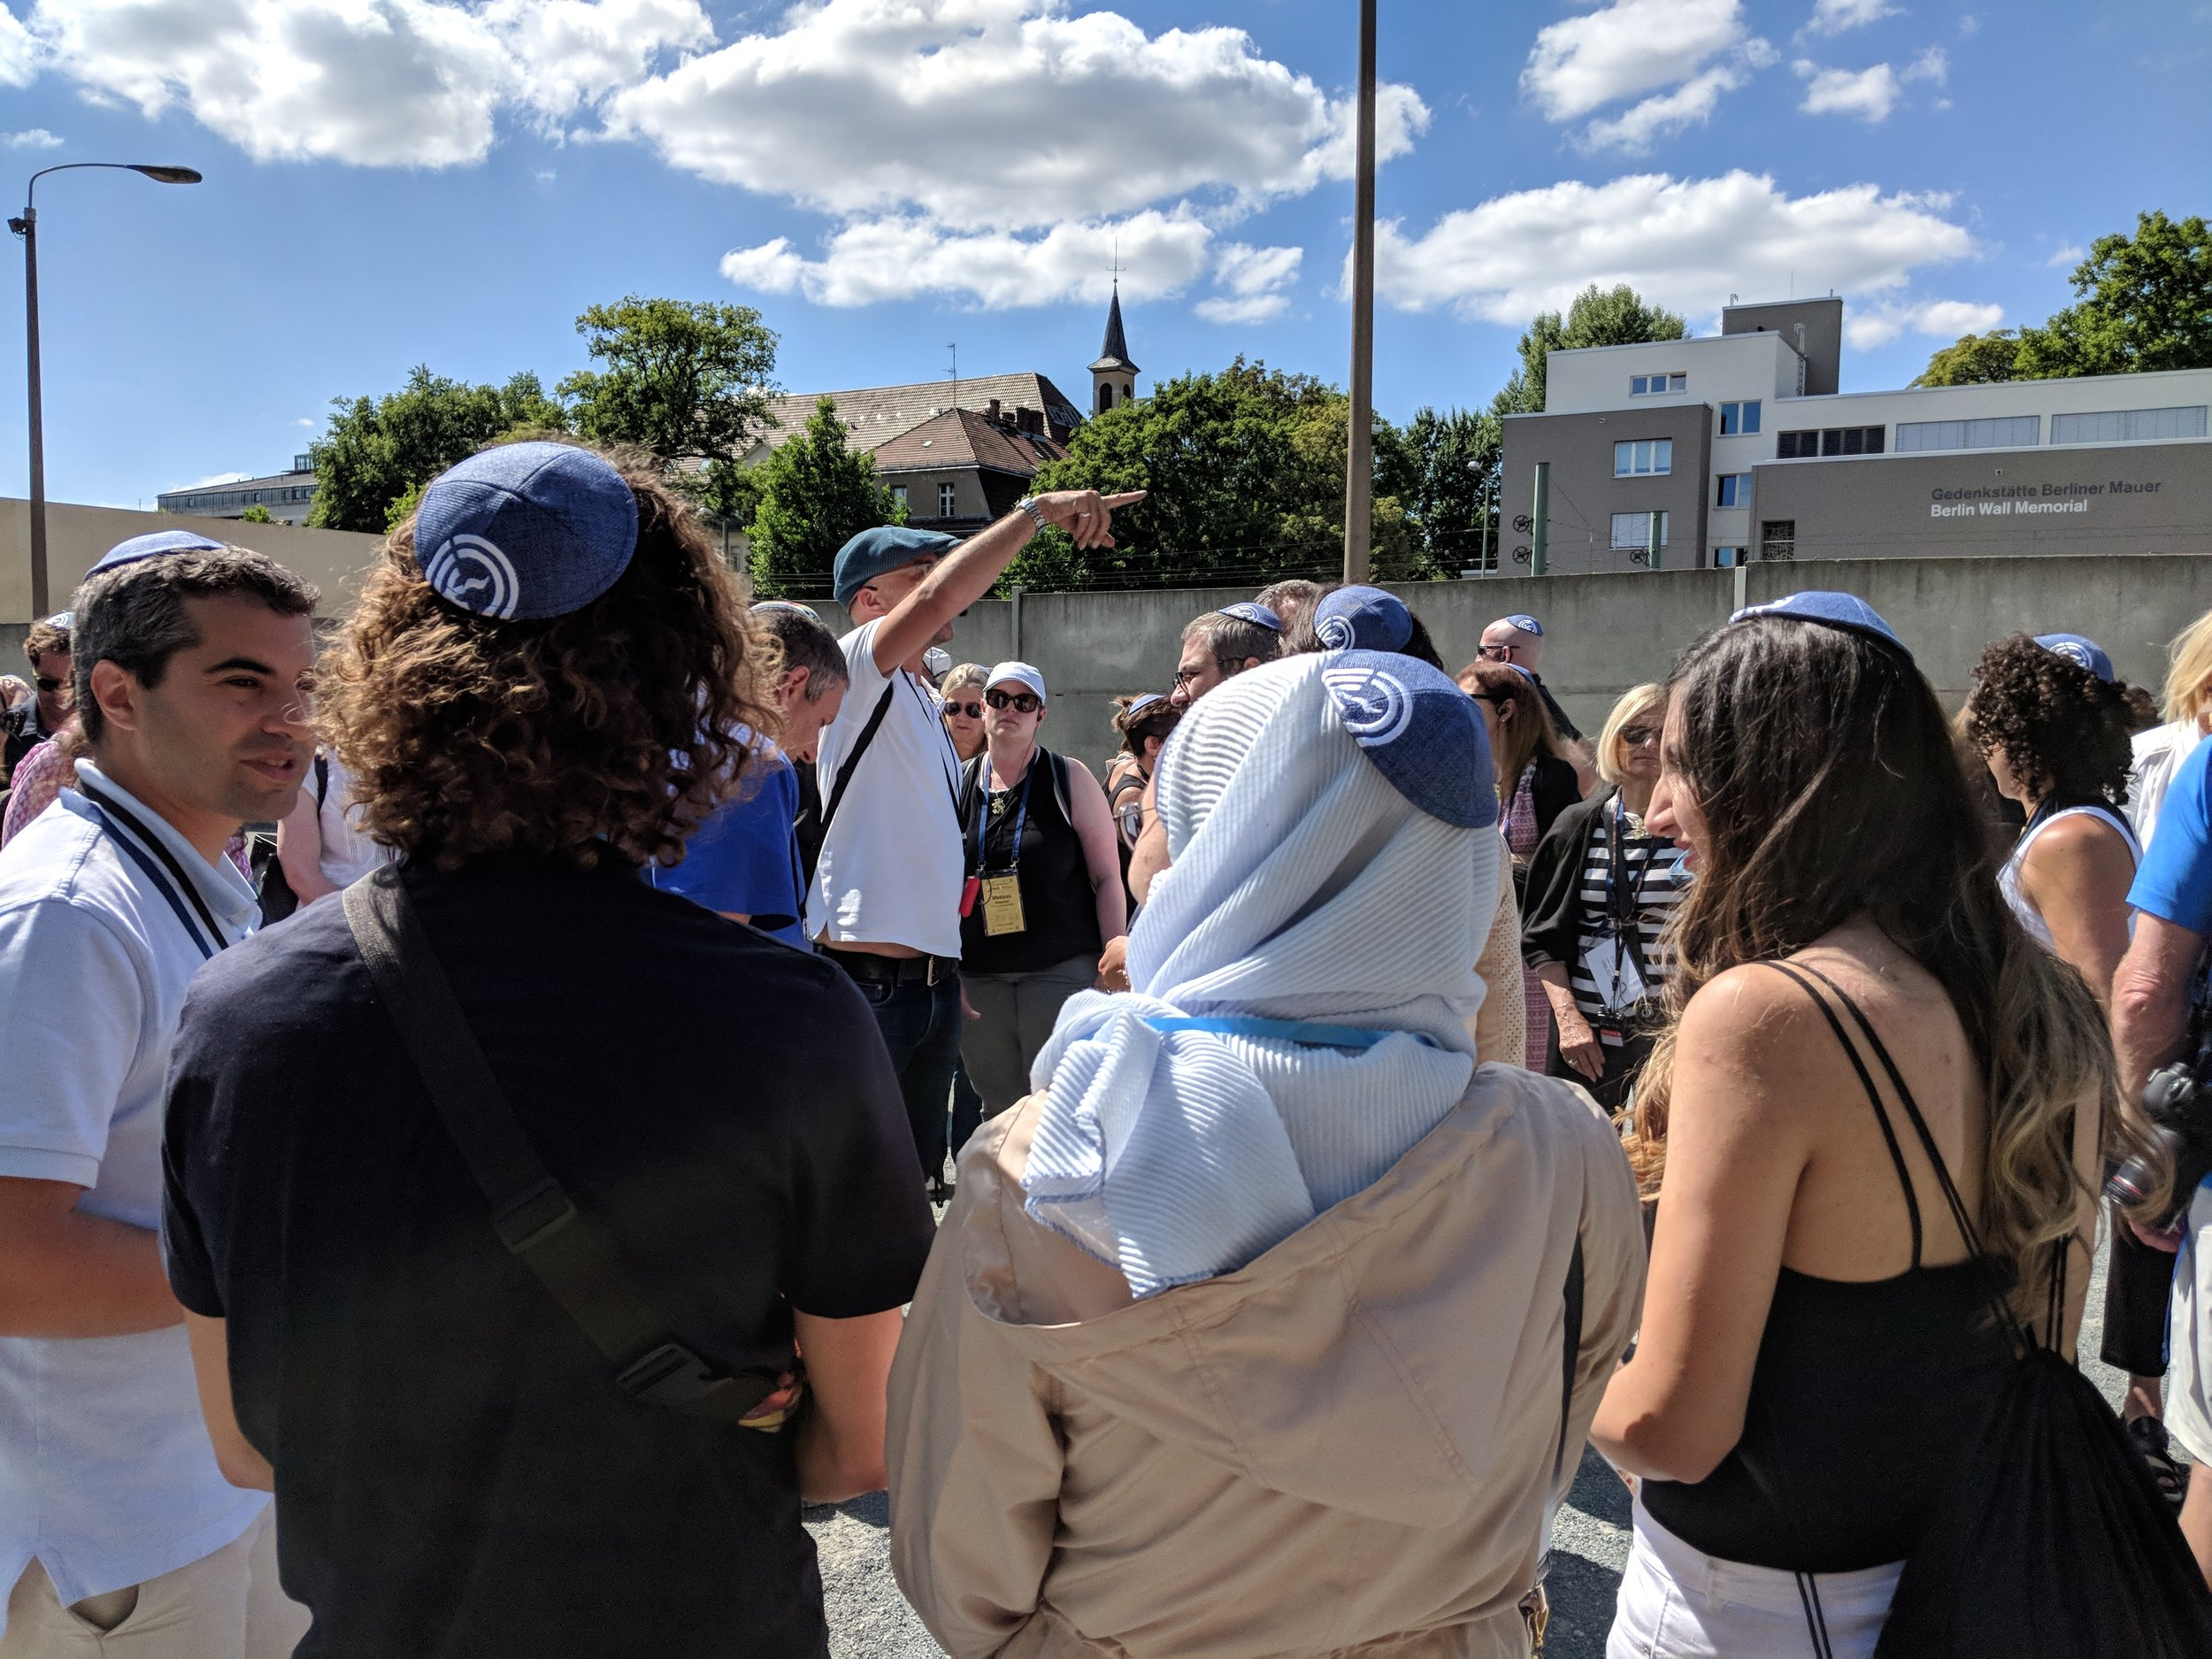 Solidarity at the Kippah Walk, East Berlin